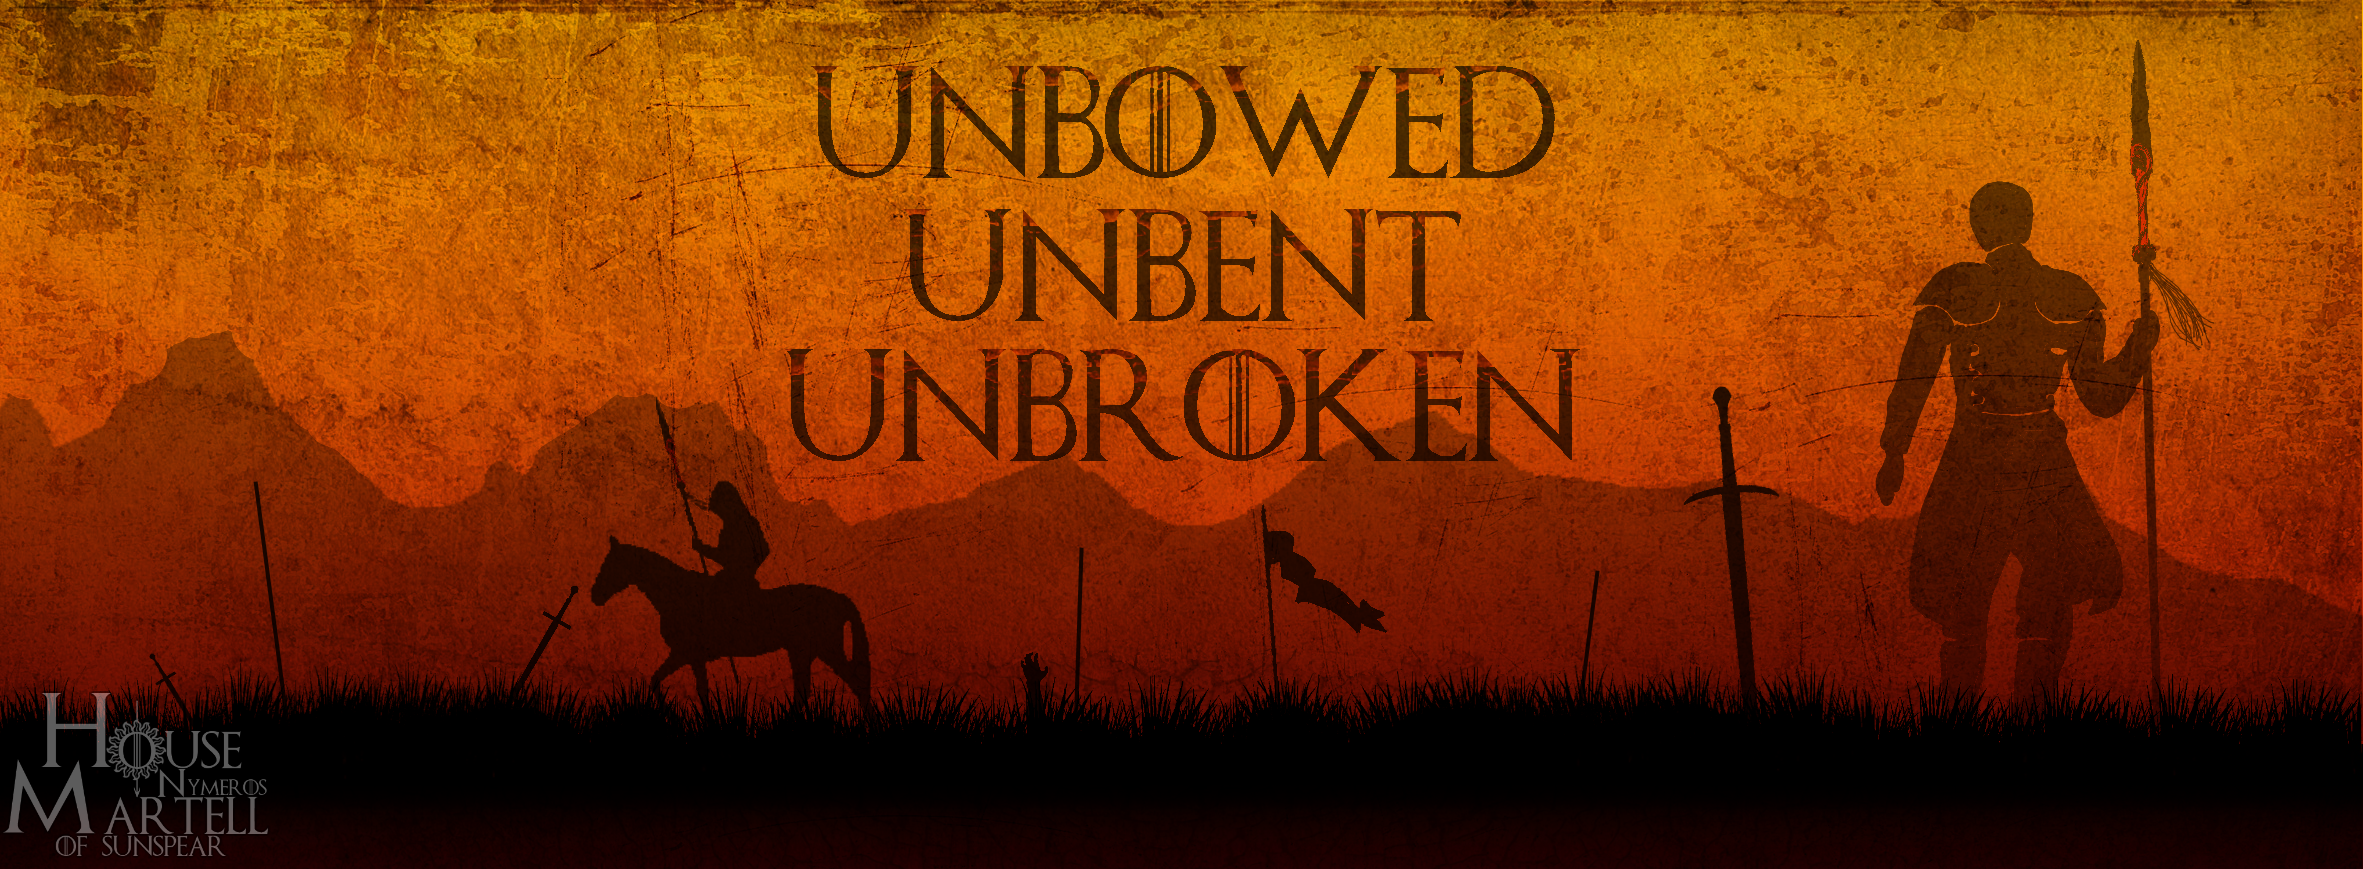 Fb cover House Martell 's words | House Nymeros Martell of Sunspear